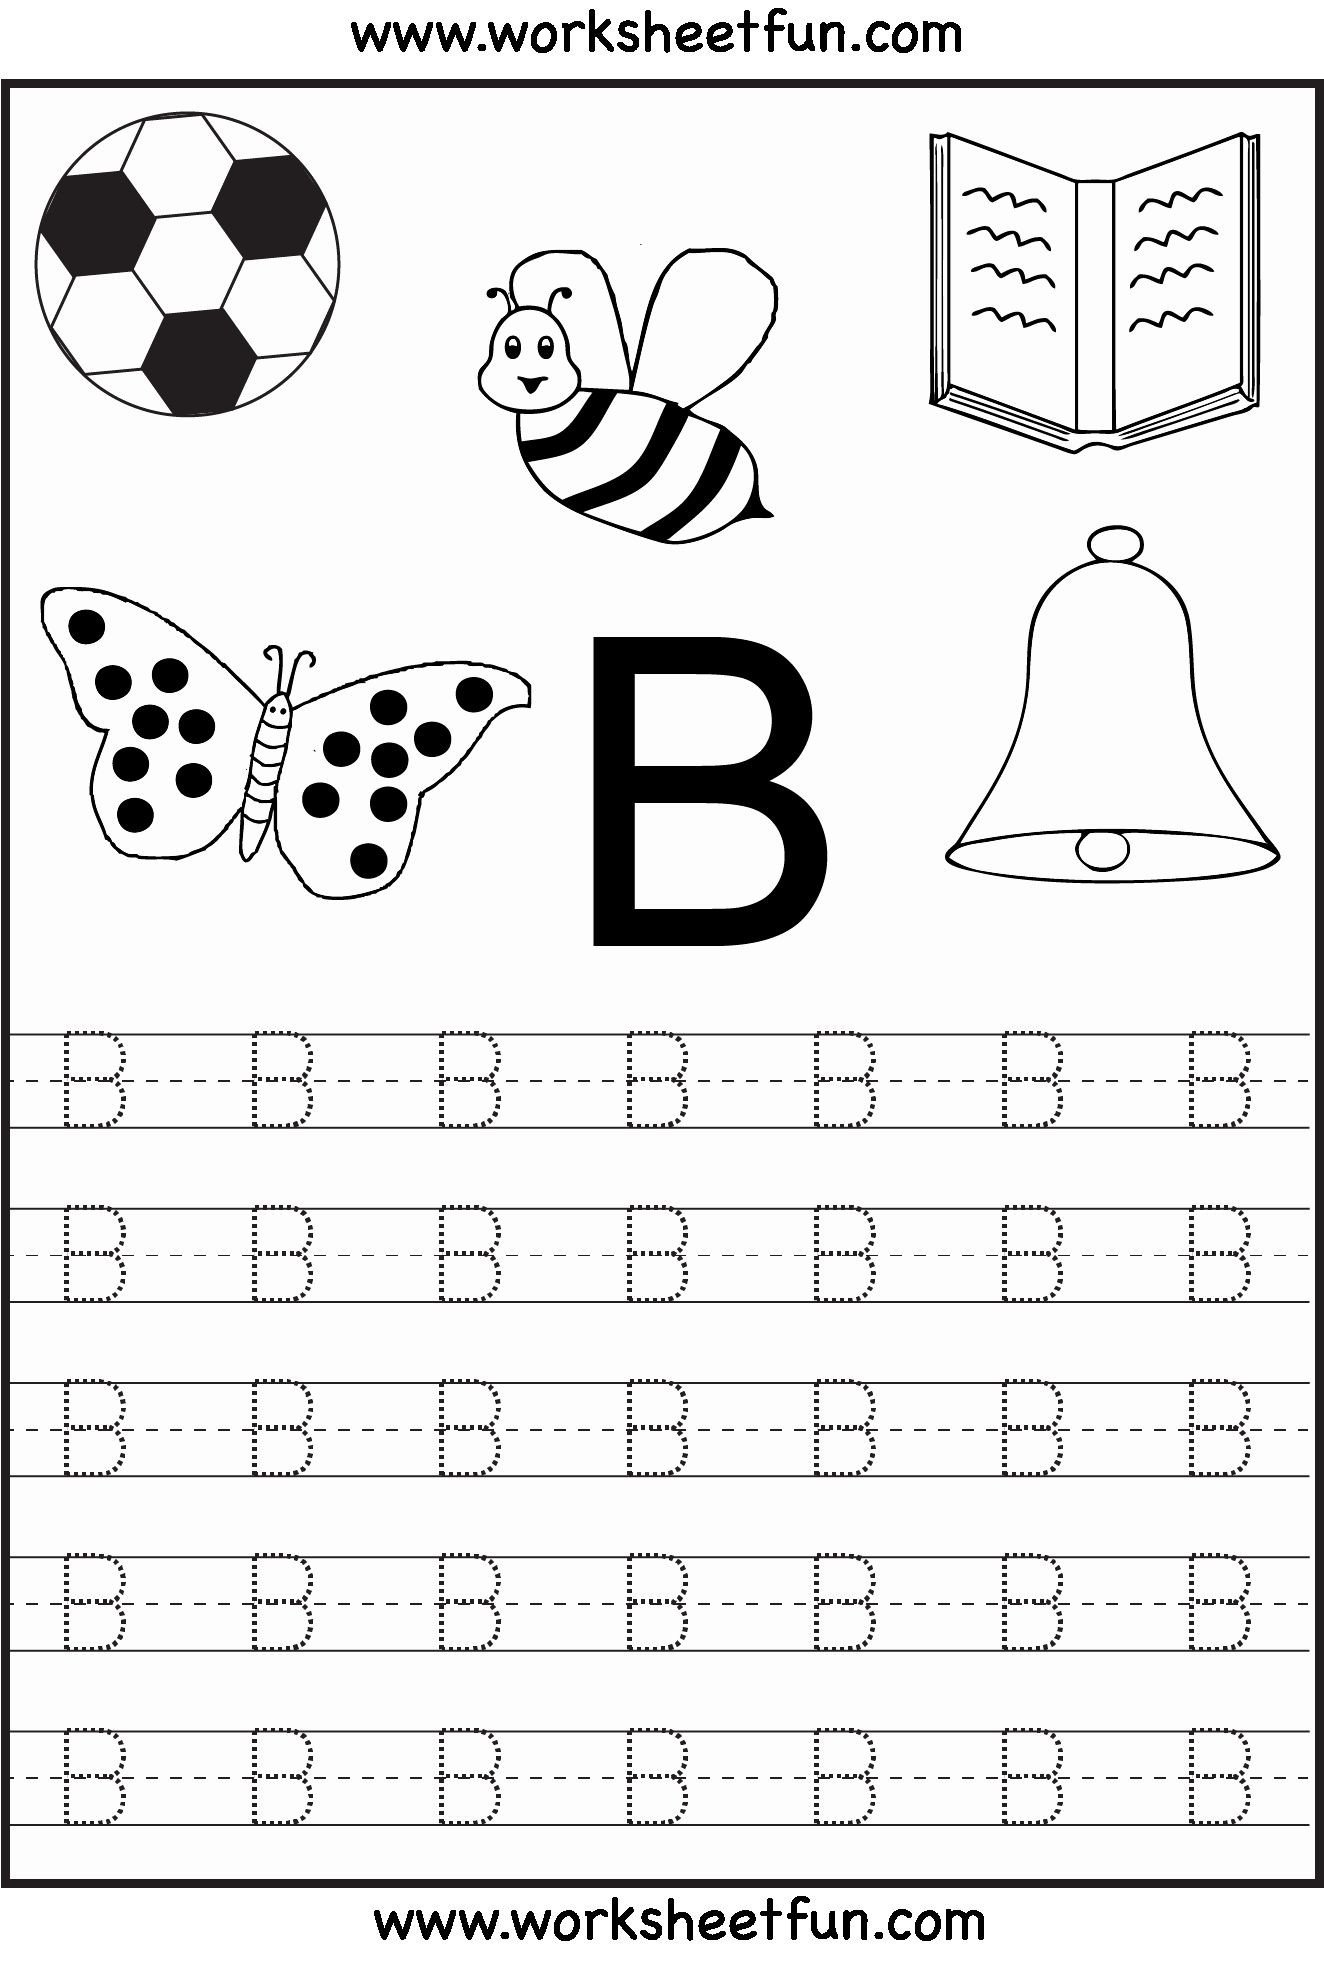 Alphabet Tracing Worksheets Pdf Alphabet Coloring Worksheets A Z Pdf Luxury Free Printable